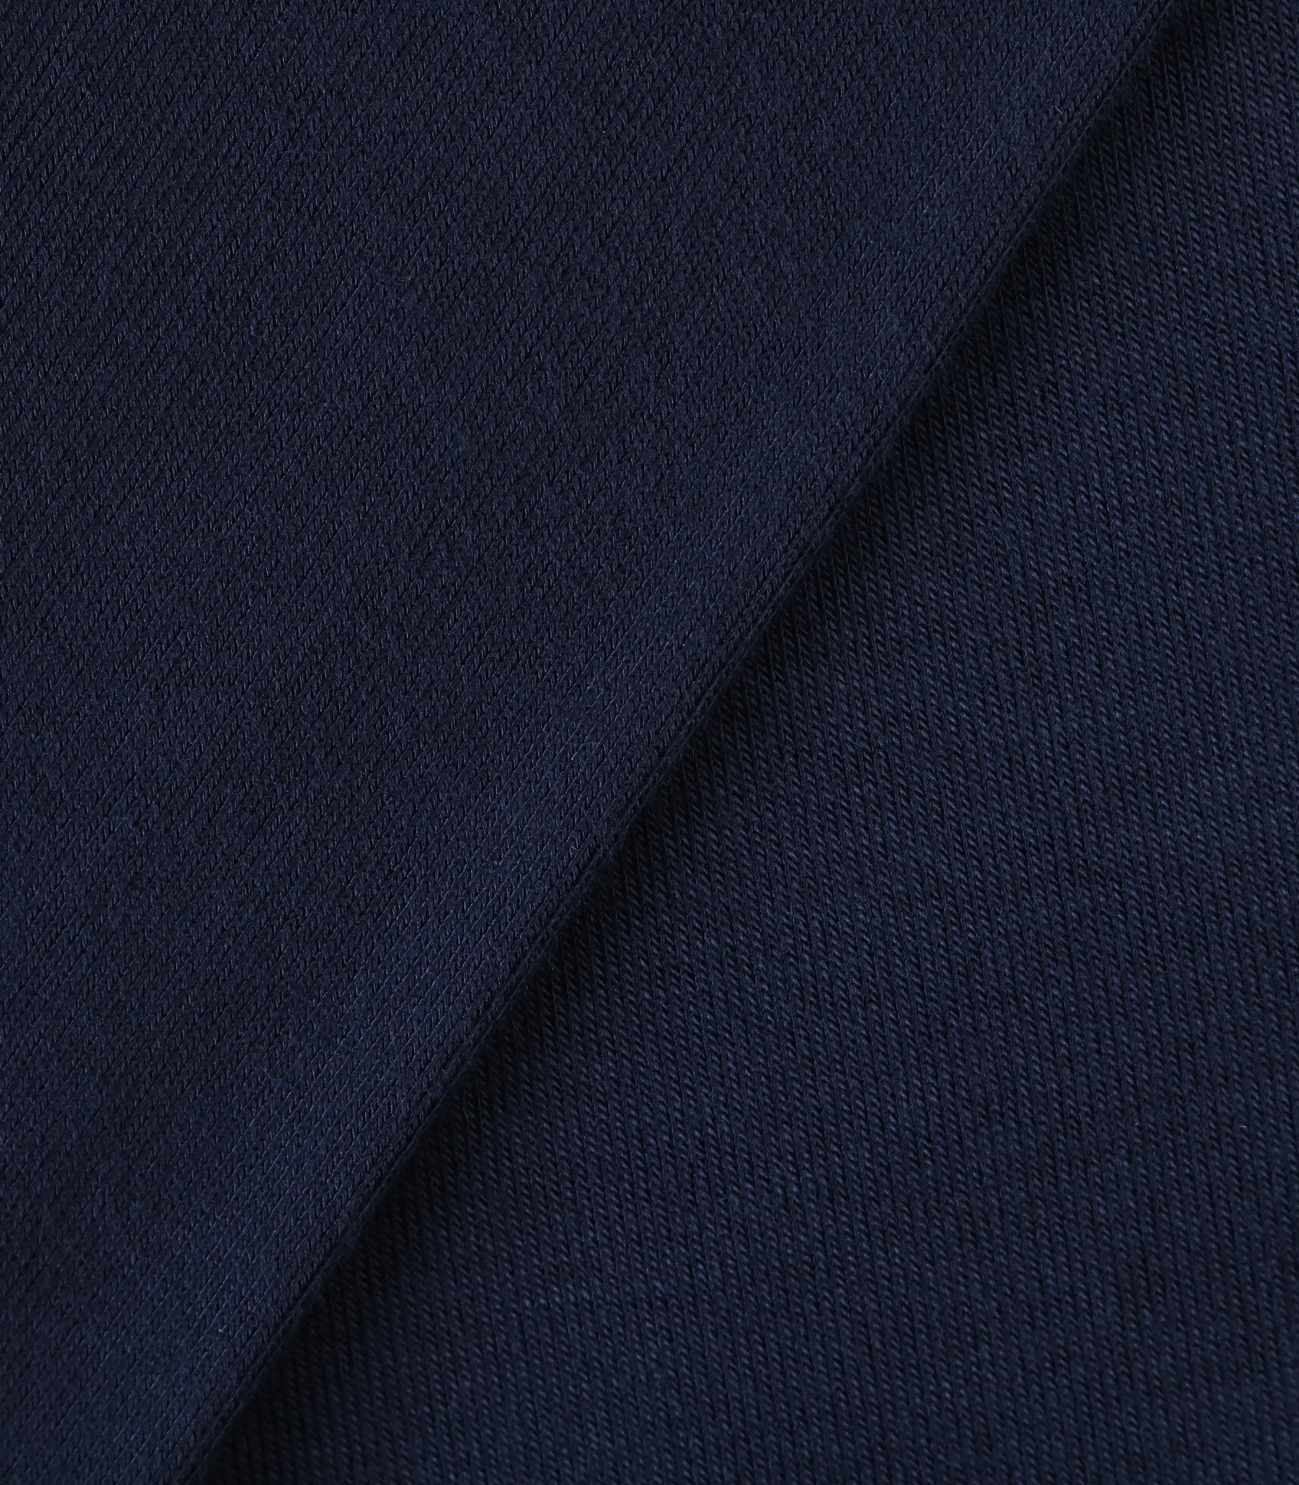 luxe rib button up cardigan 詳細画像 night iris 7